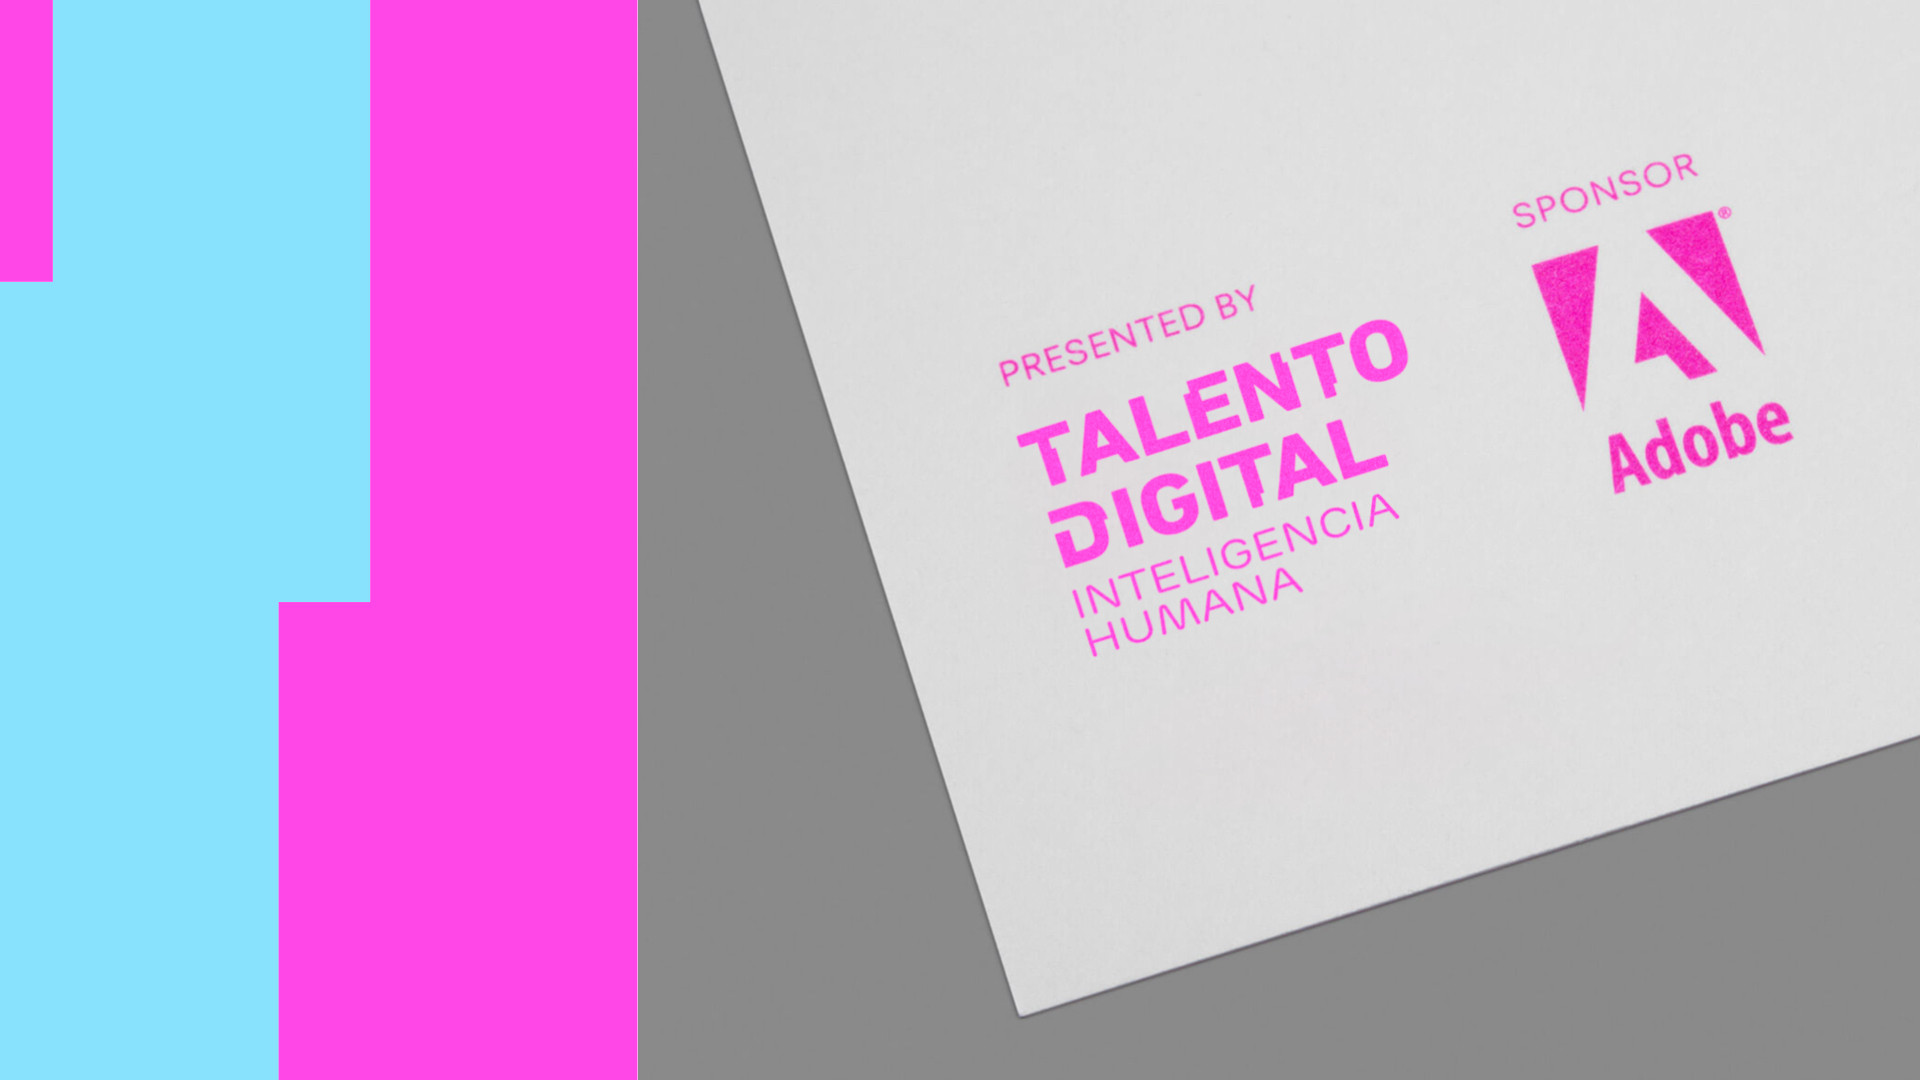 TALENTO DIGITAL.005.jpeg